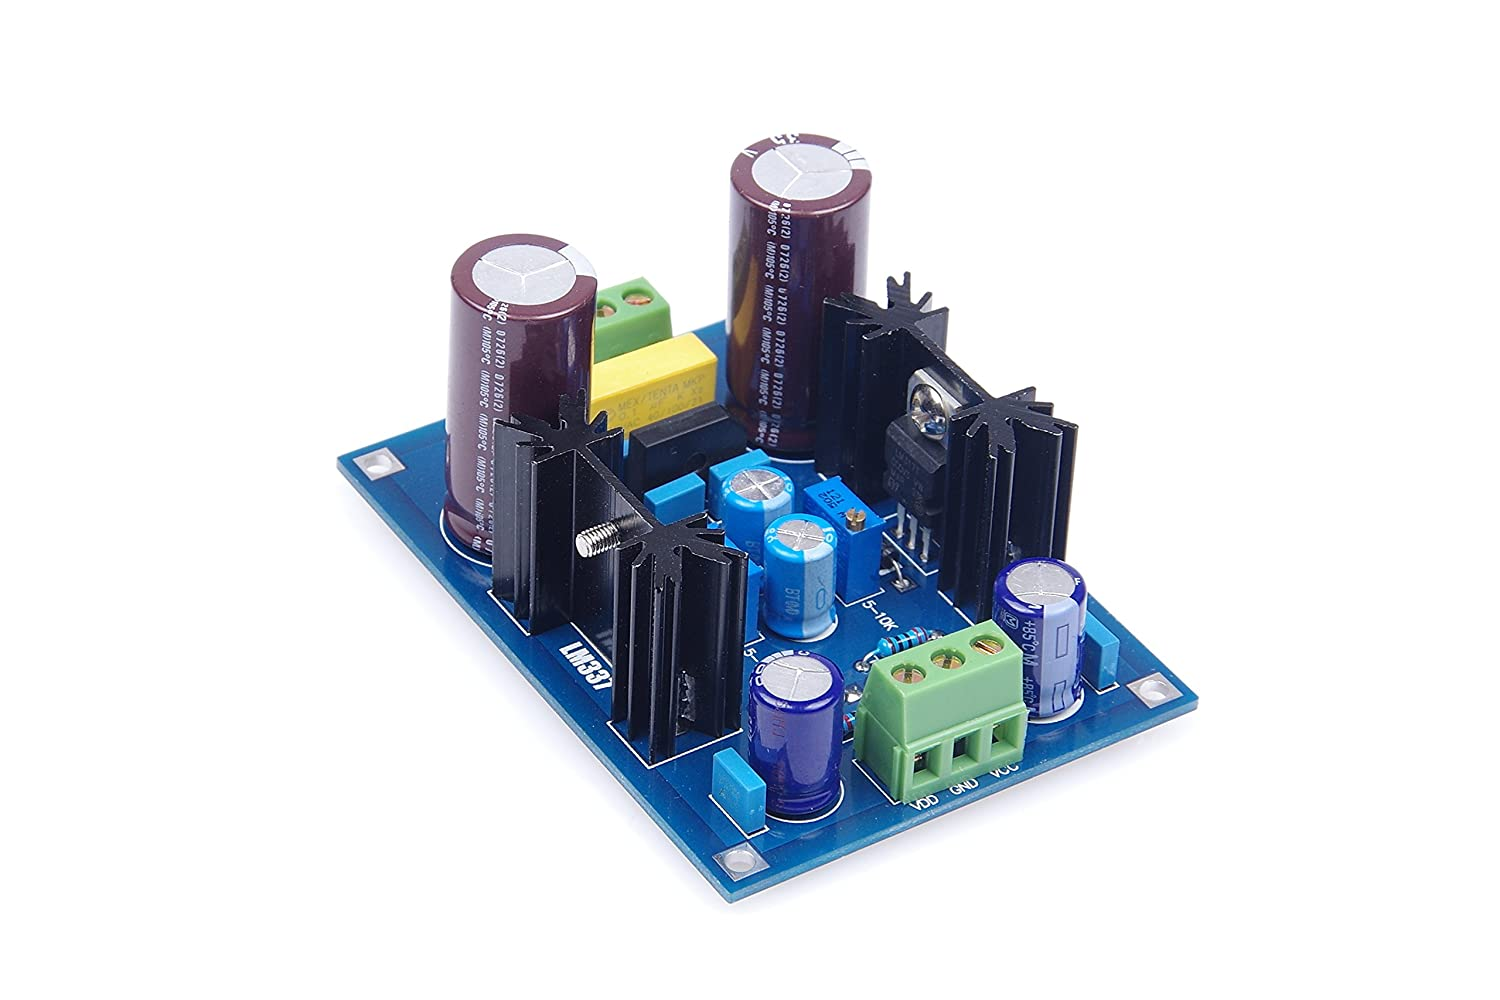 Knacro Lm317 Lm337 Adjustable Voltage Regulator Power Positive With Pnp Boost Supply Board 125v To 37v Dc Output Home Audio Theater